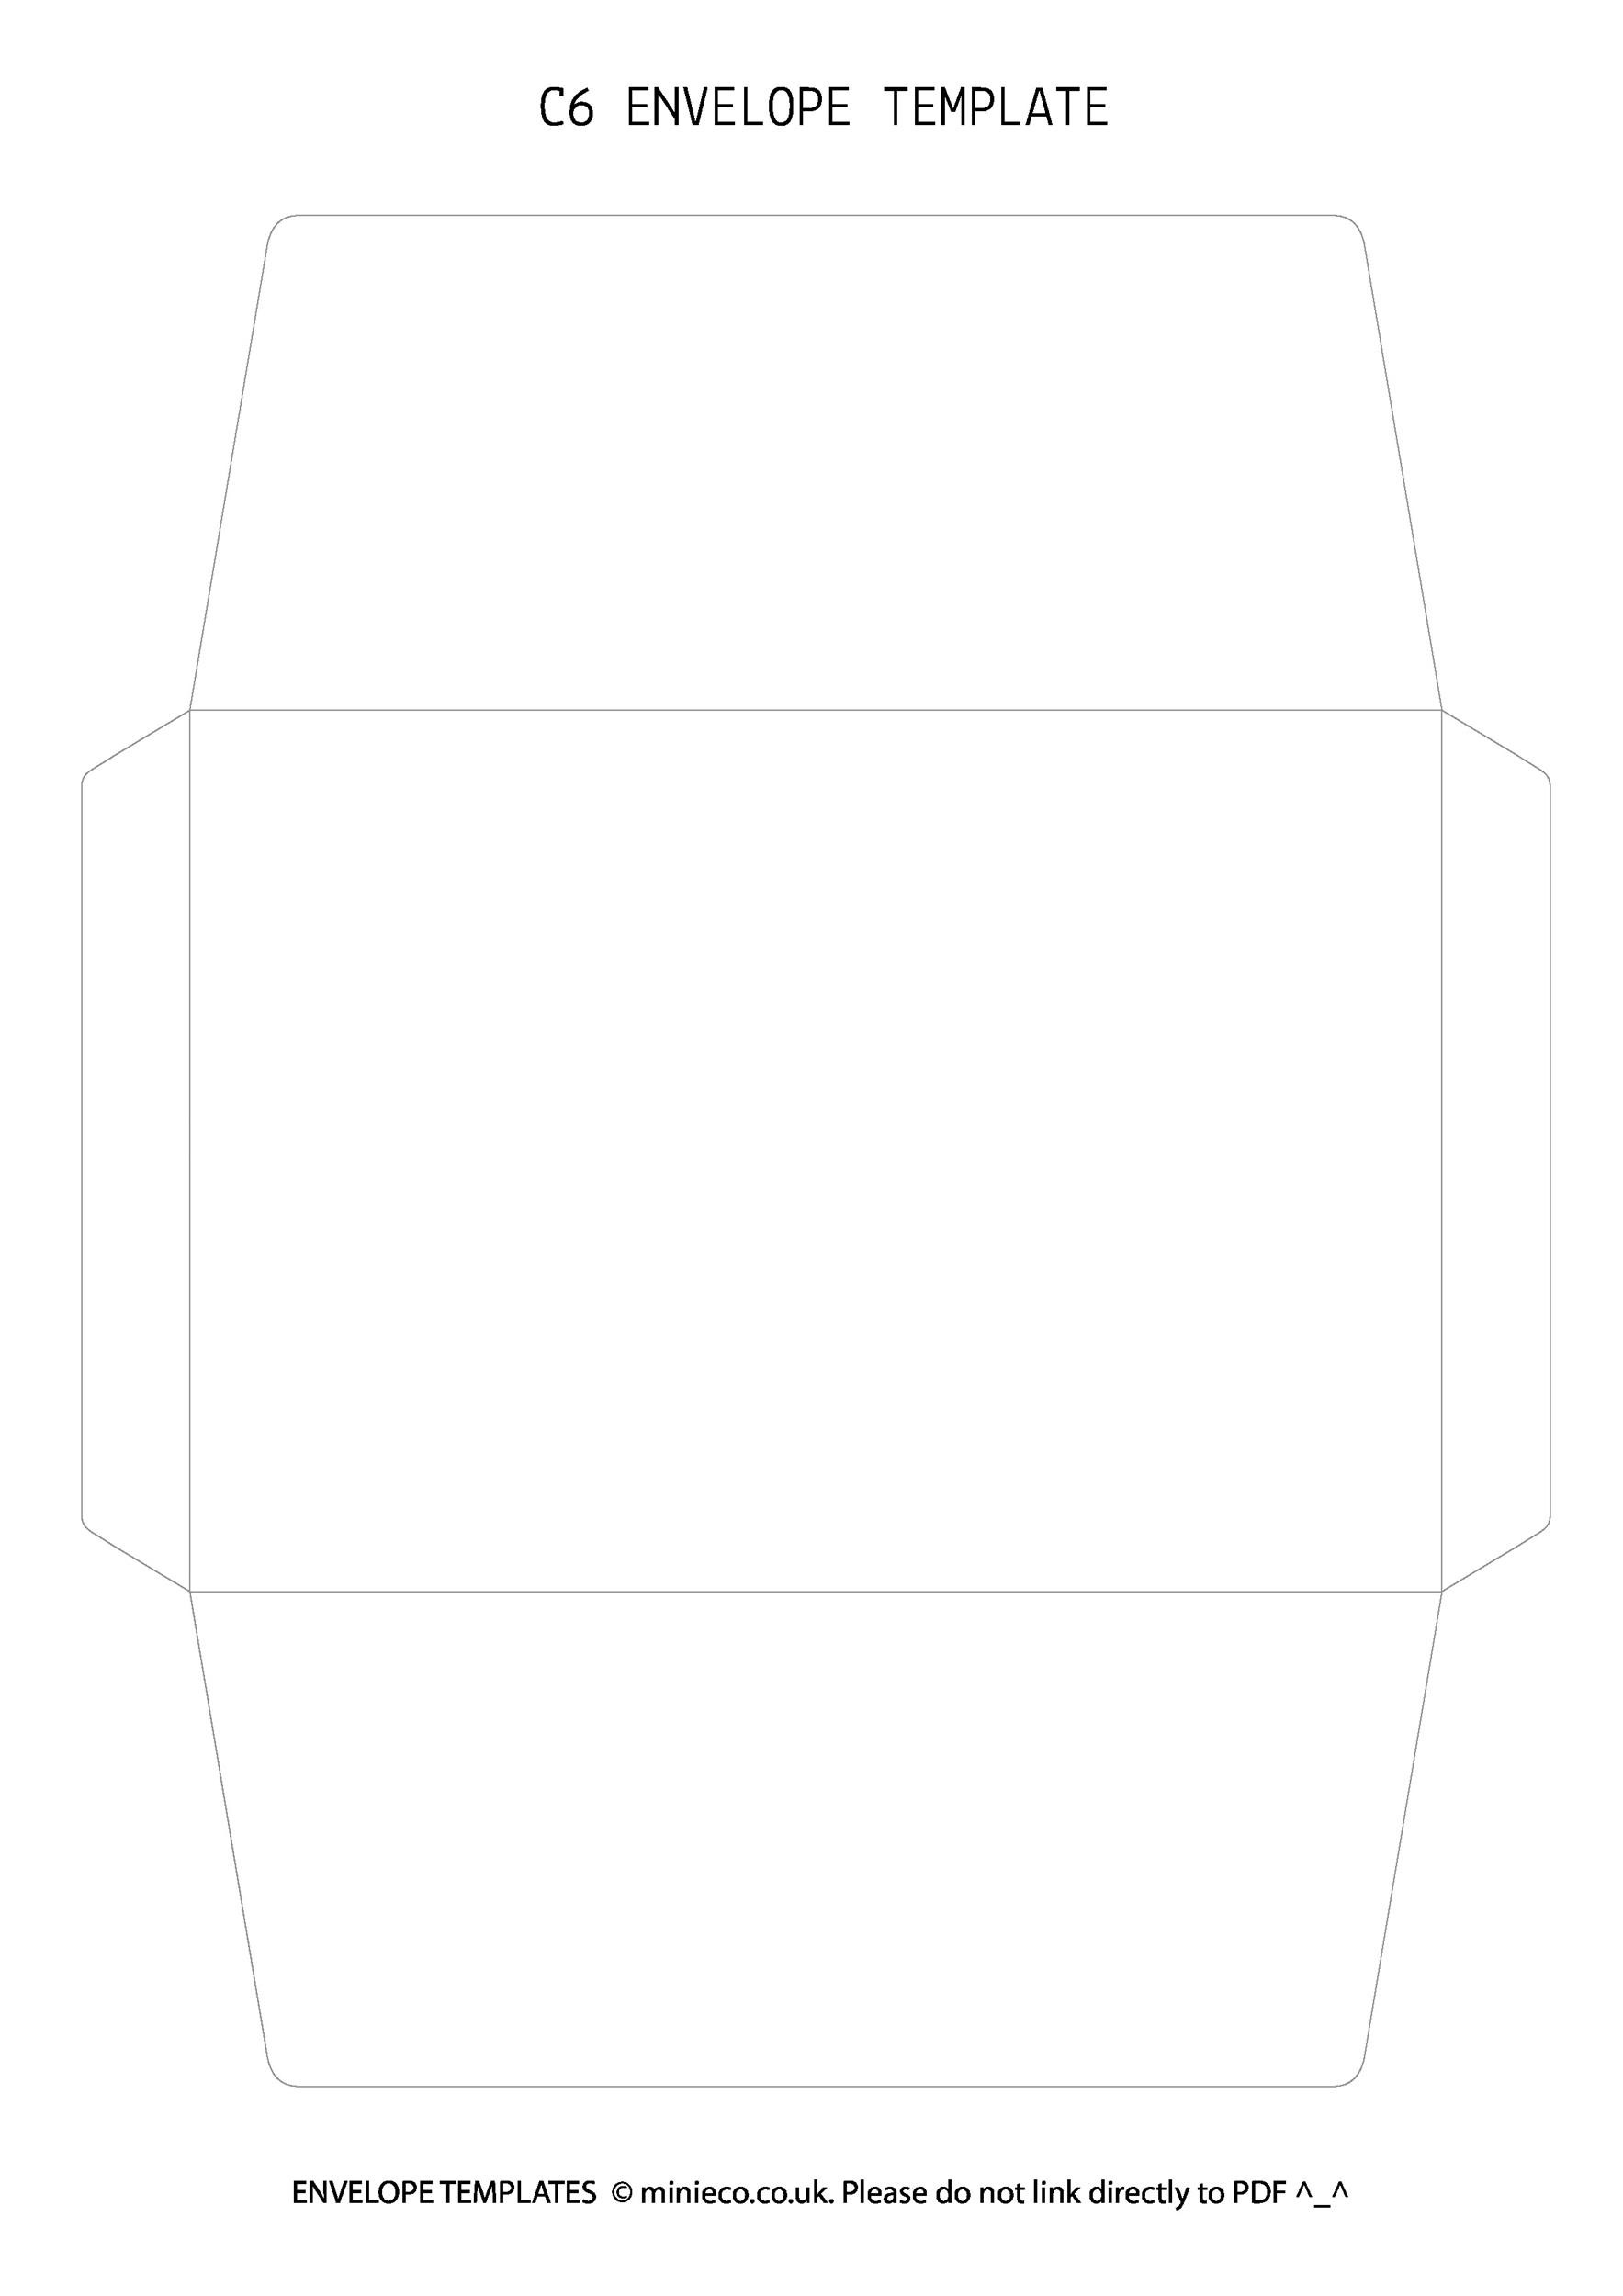 free envelope template 28 - Free Envelope Template